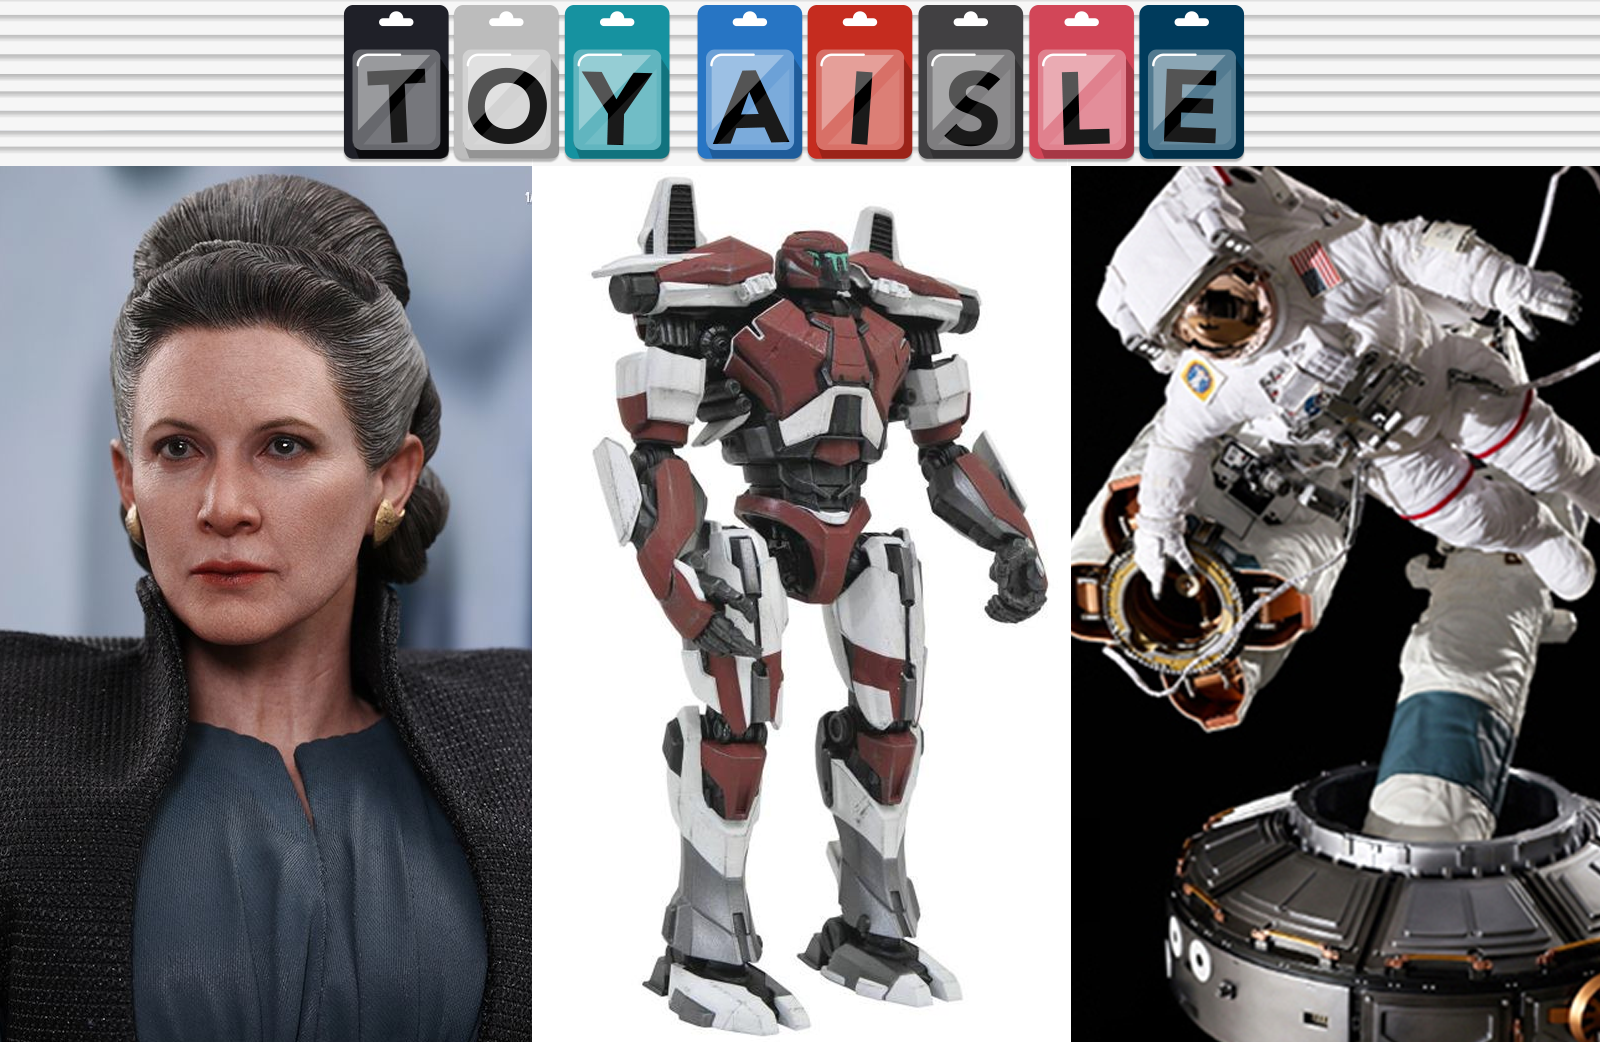 Gorgeous Pacific Rim Robots, And More Toys You Wish You Got For Christmas